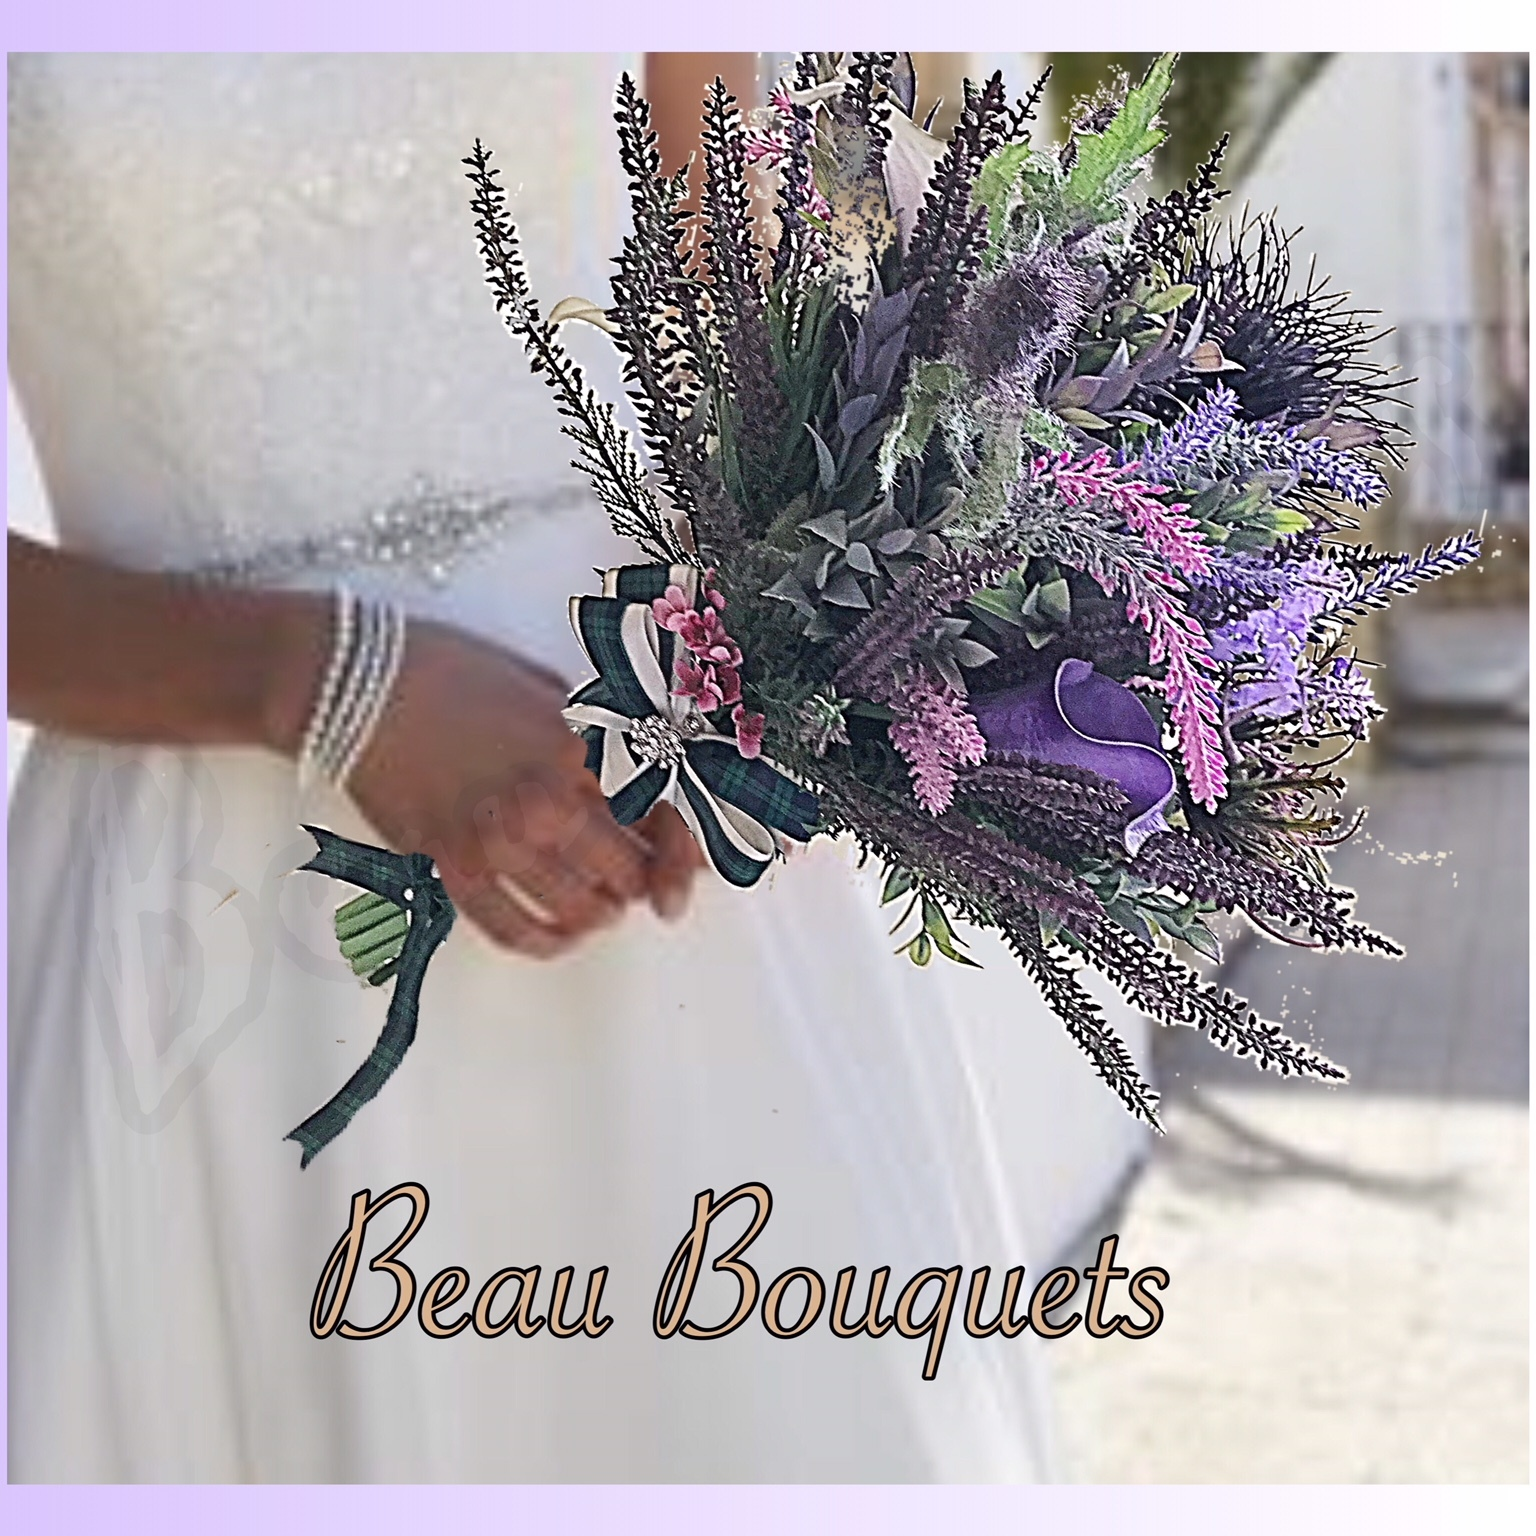 HERA - SCOTTISH SPRAY BOUQUET Purples & ivory Scottish Heather Thistle and Calla Lily spray Bride Bouquet with diamantes in each Calla Lily and pearl sprays entwined. Satin Ribbon handle with Tartan & purple ribbon & pearl pin trim. Grooms Thistle buttonhole with Tartan & purple ribbon trim